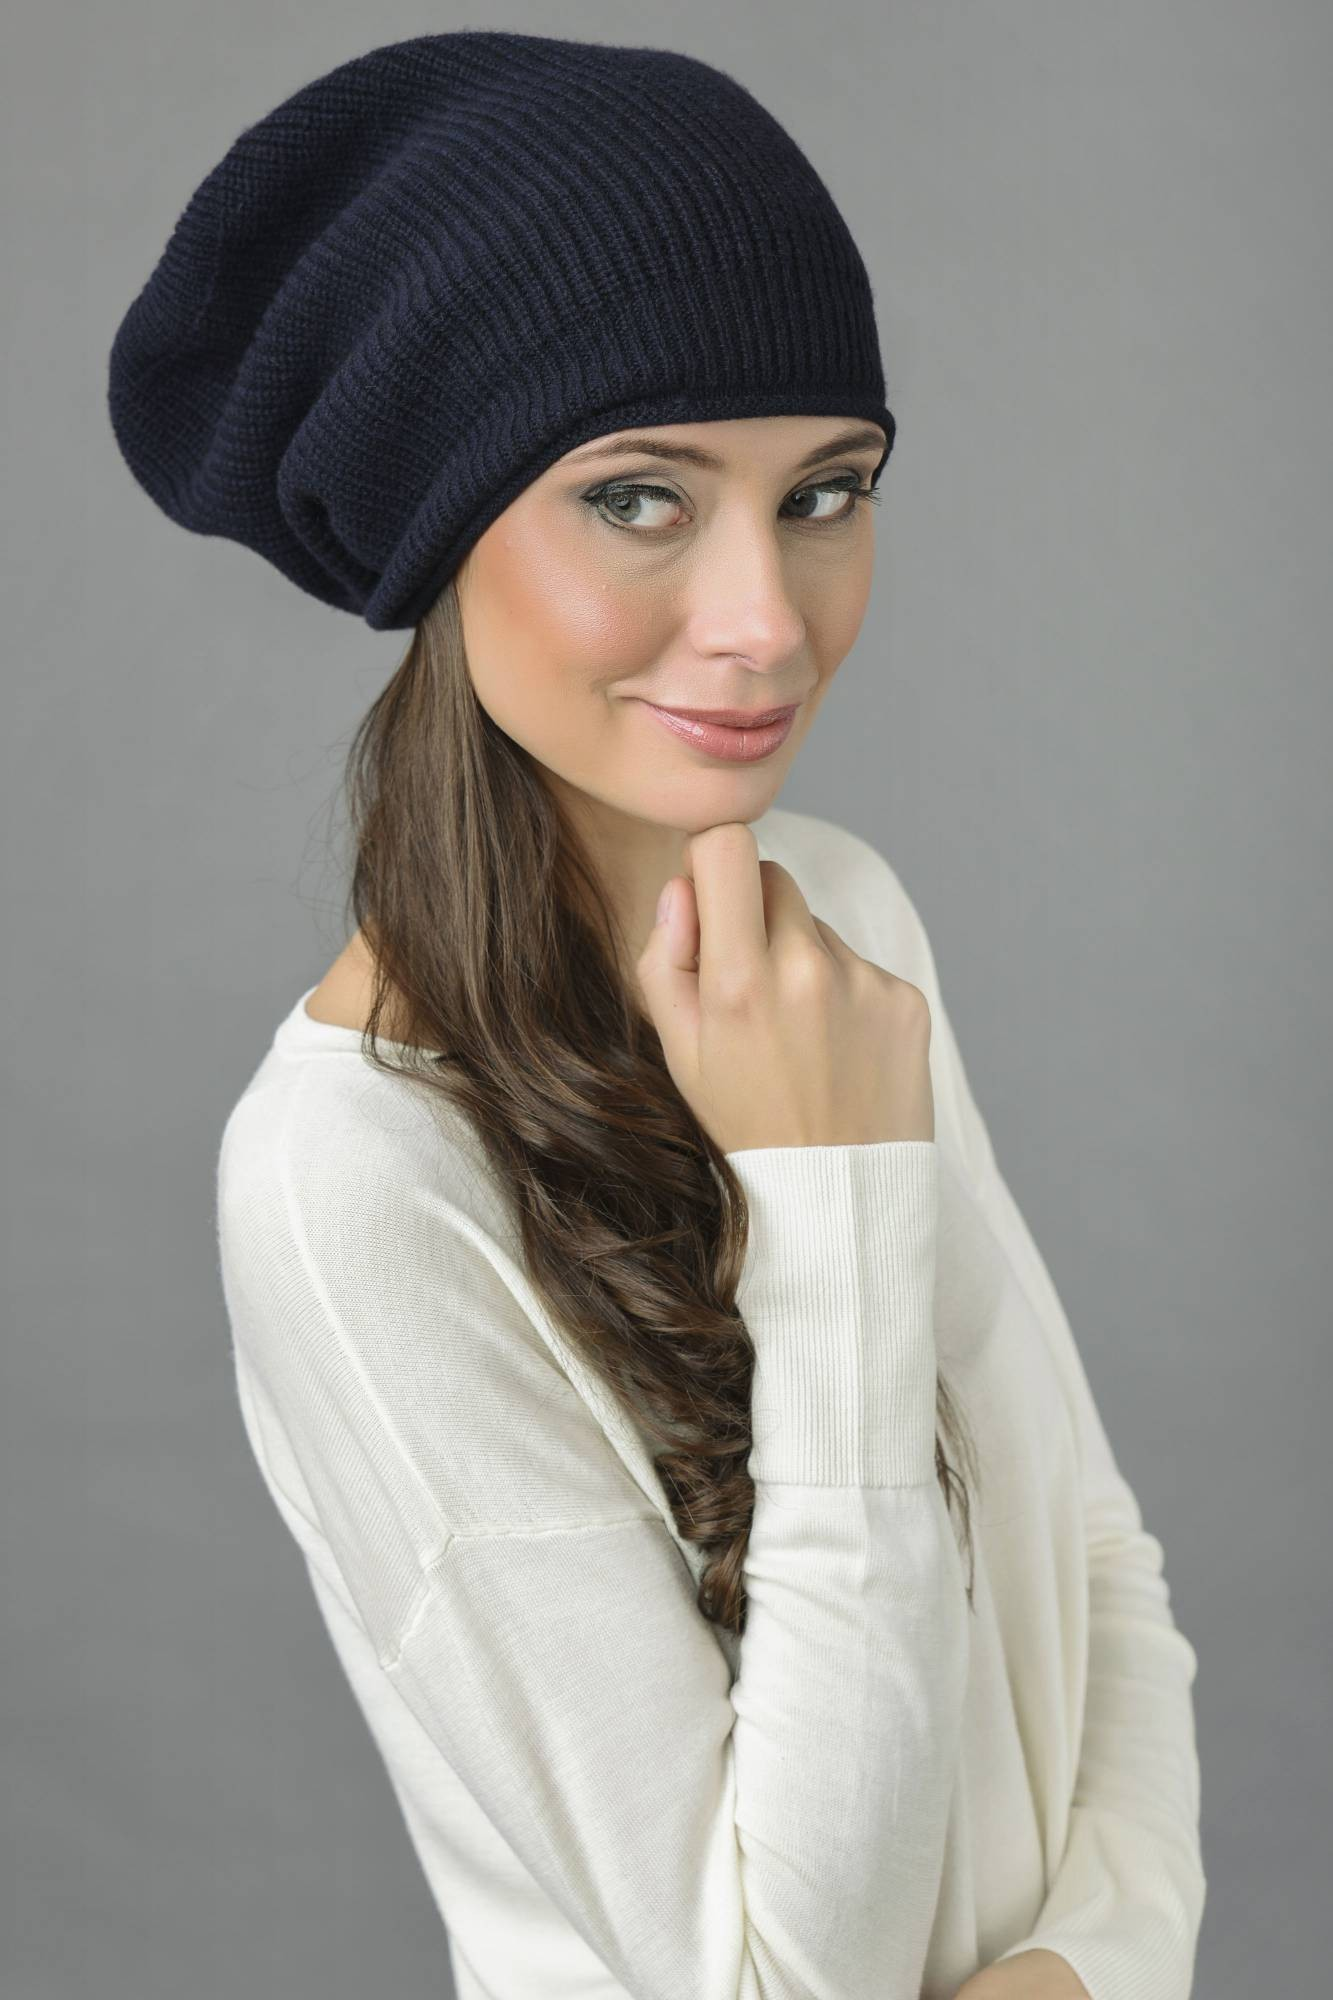 3a25cbabd Pure Cashmere Ribbed Knitted Slouchy Beanie Hat in Navy Blue